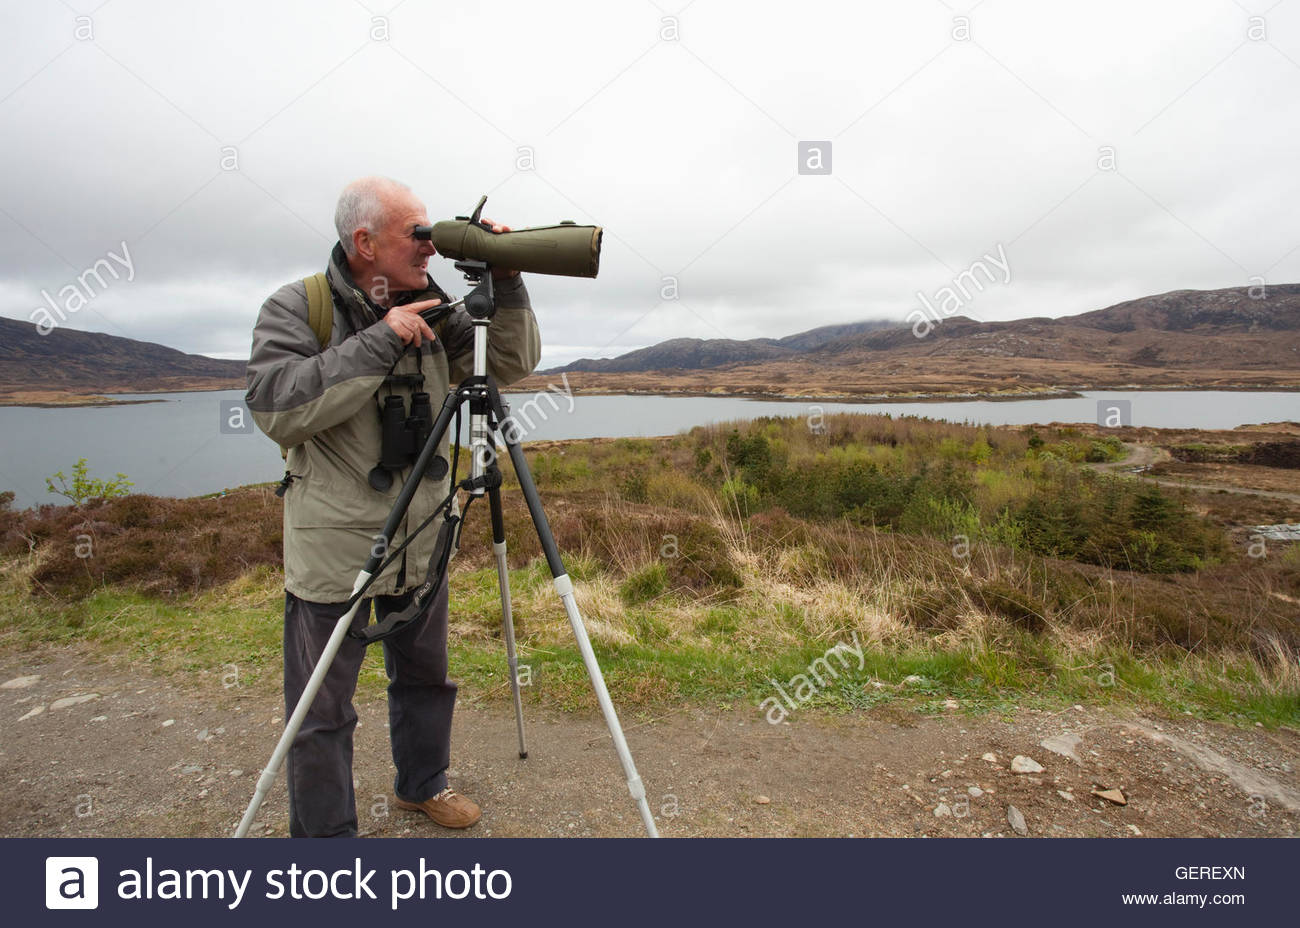 Wildlife watching at Loch Aineort, Isle of South Uist, Outer Hebrides, Scotland. - Stock Image